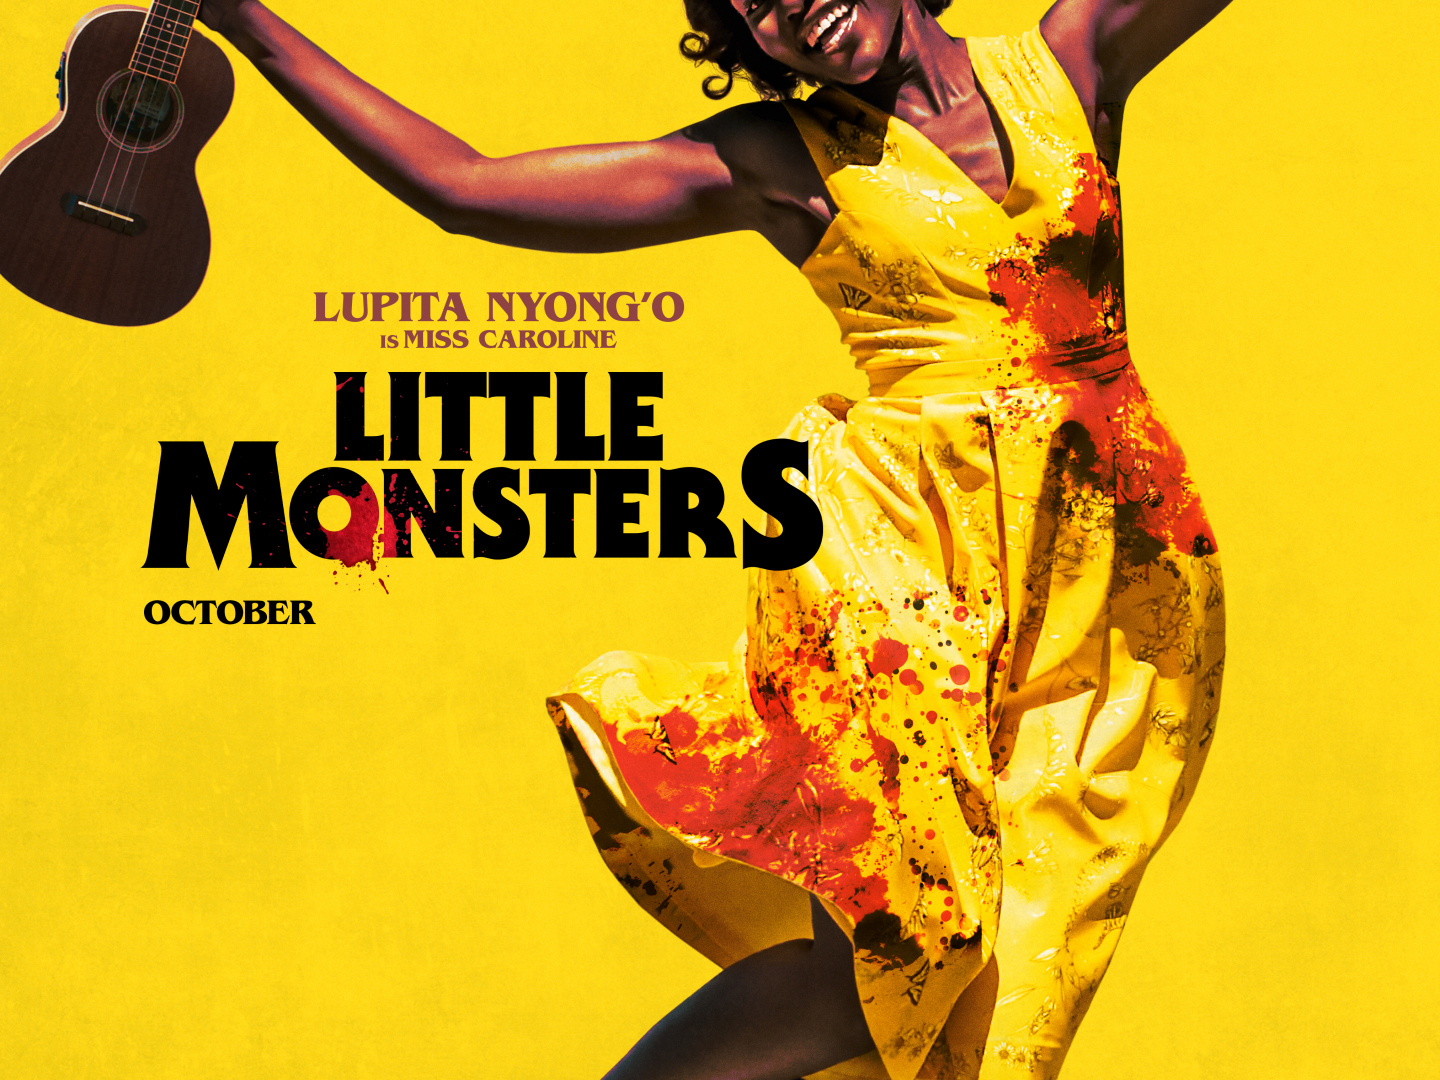 LITTLE MONSTERS Thumbnail